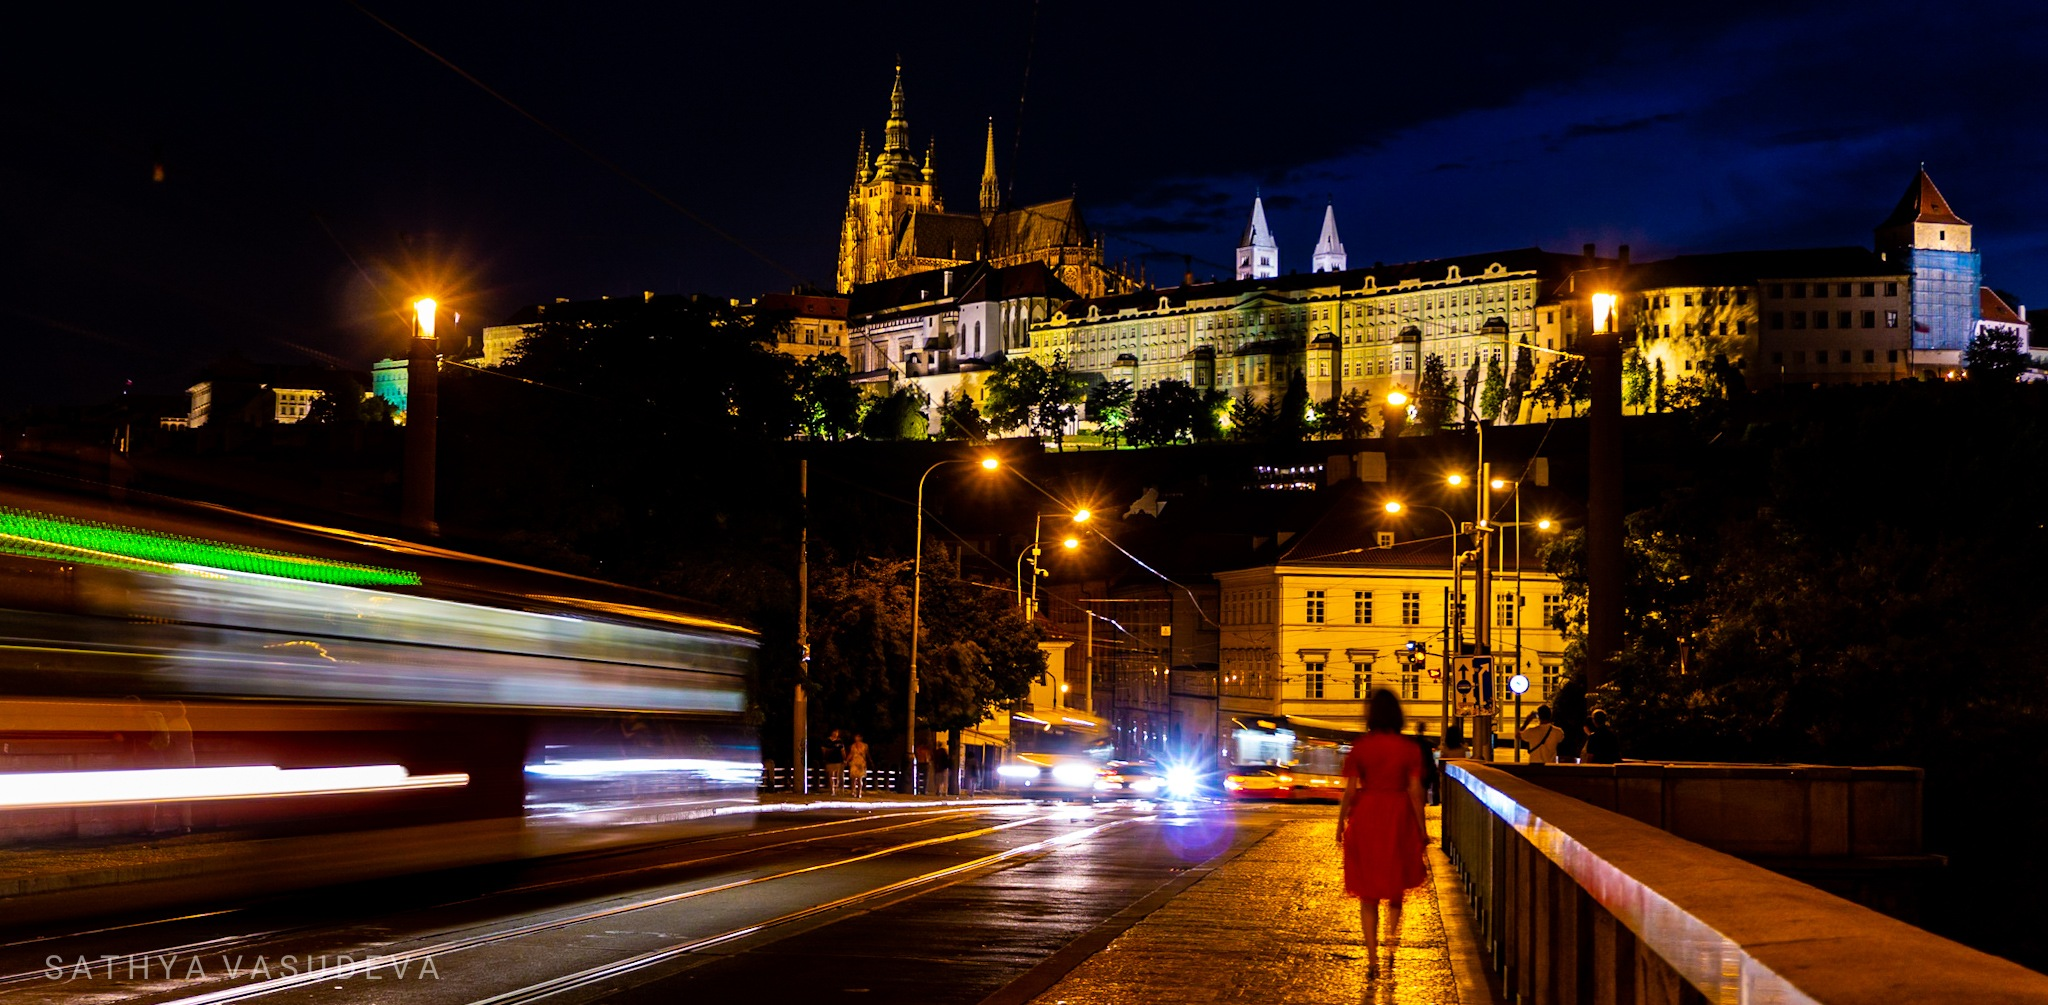 Speed of light by Sathya